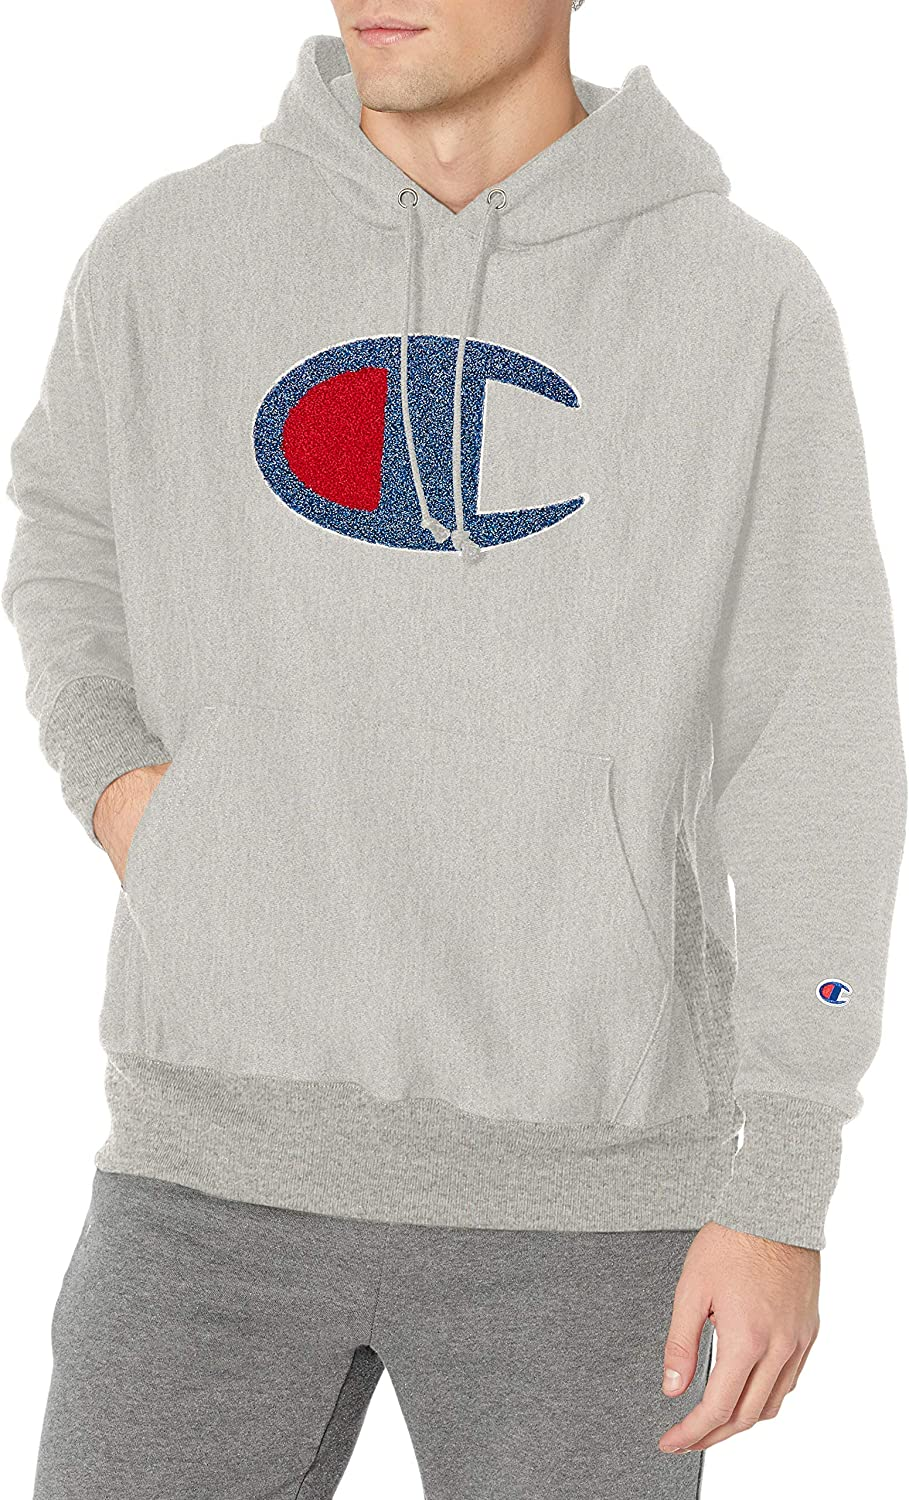 Champion Max 73% OFF Men's Reverse Graphic Weave Pullover Seasonal Wrap Introduction